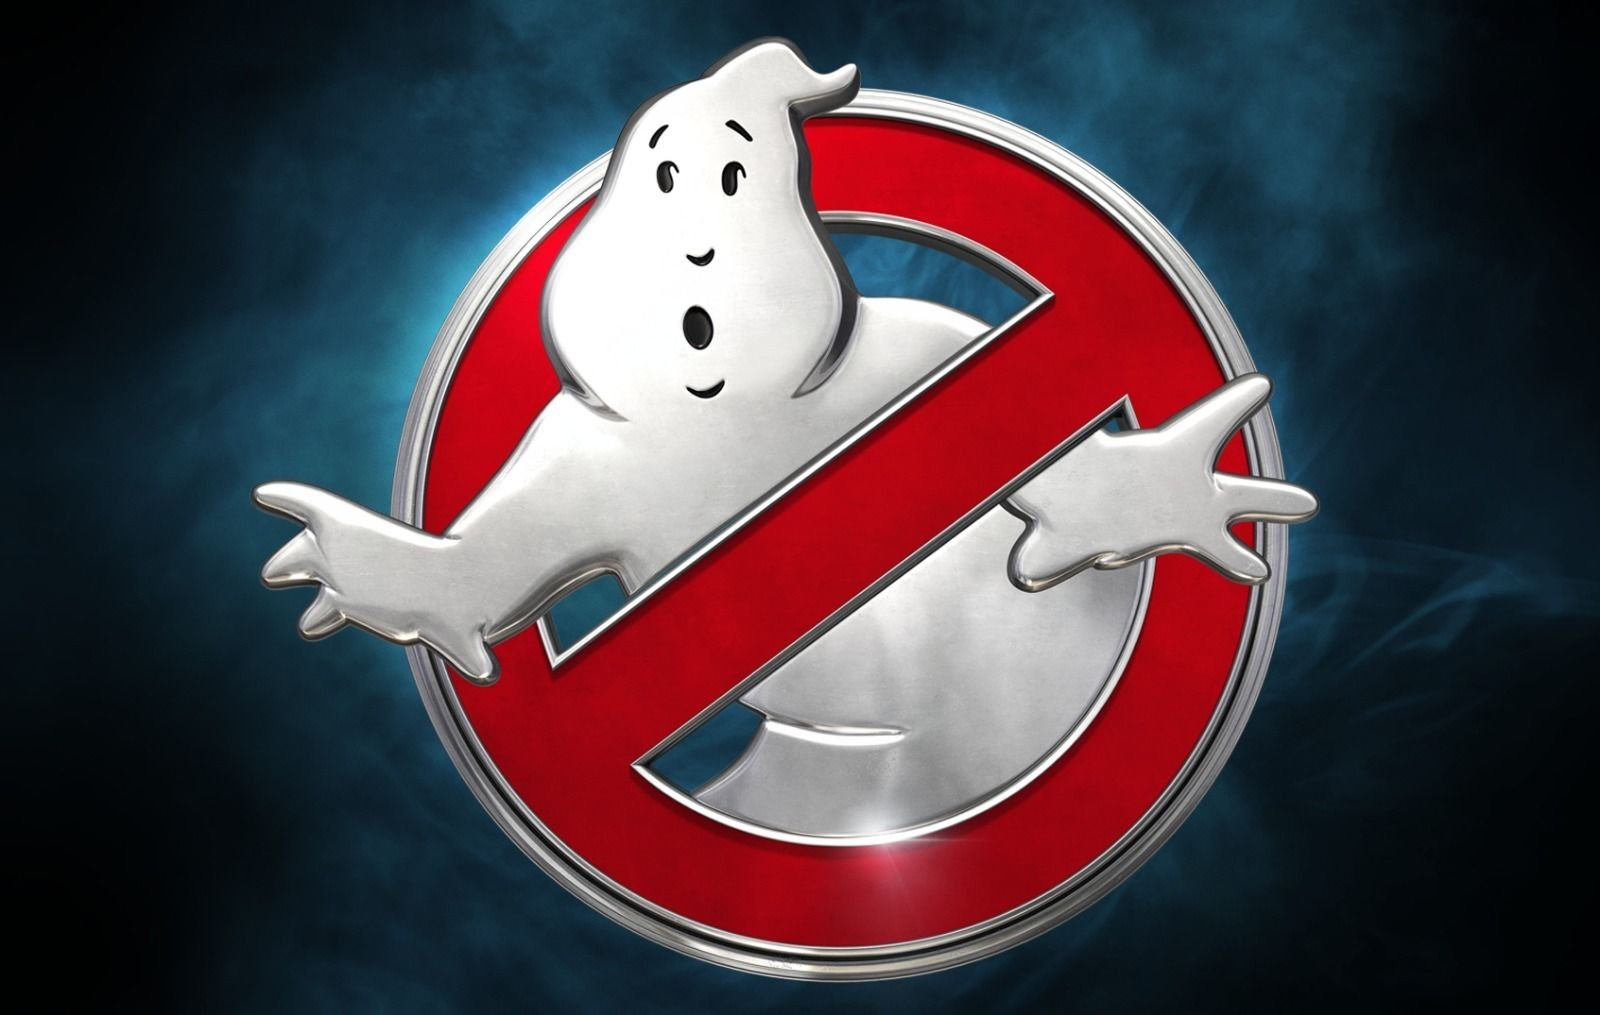 SDore Ghostbusters 2016 NEW Movie Birthday Party Edible 1/2 Half Sheet Image Frosting Cake Topper